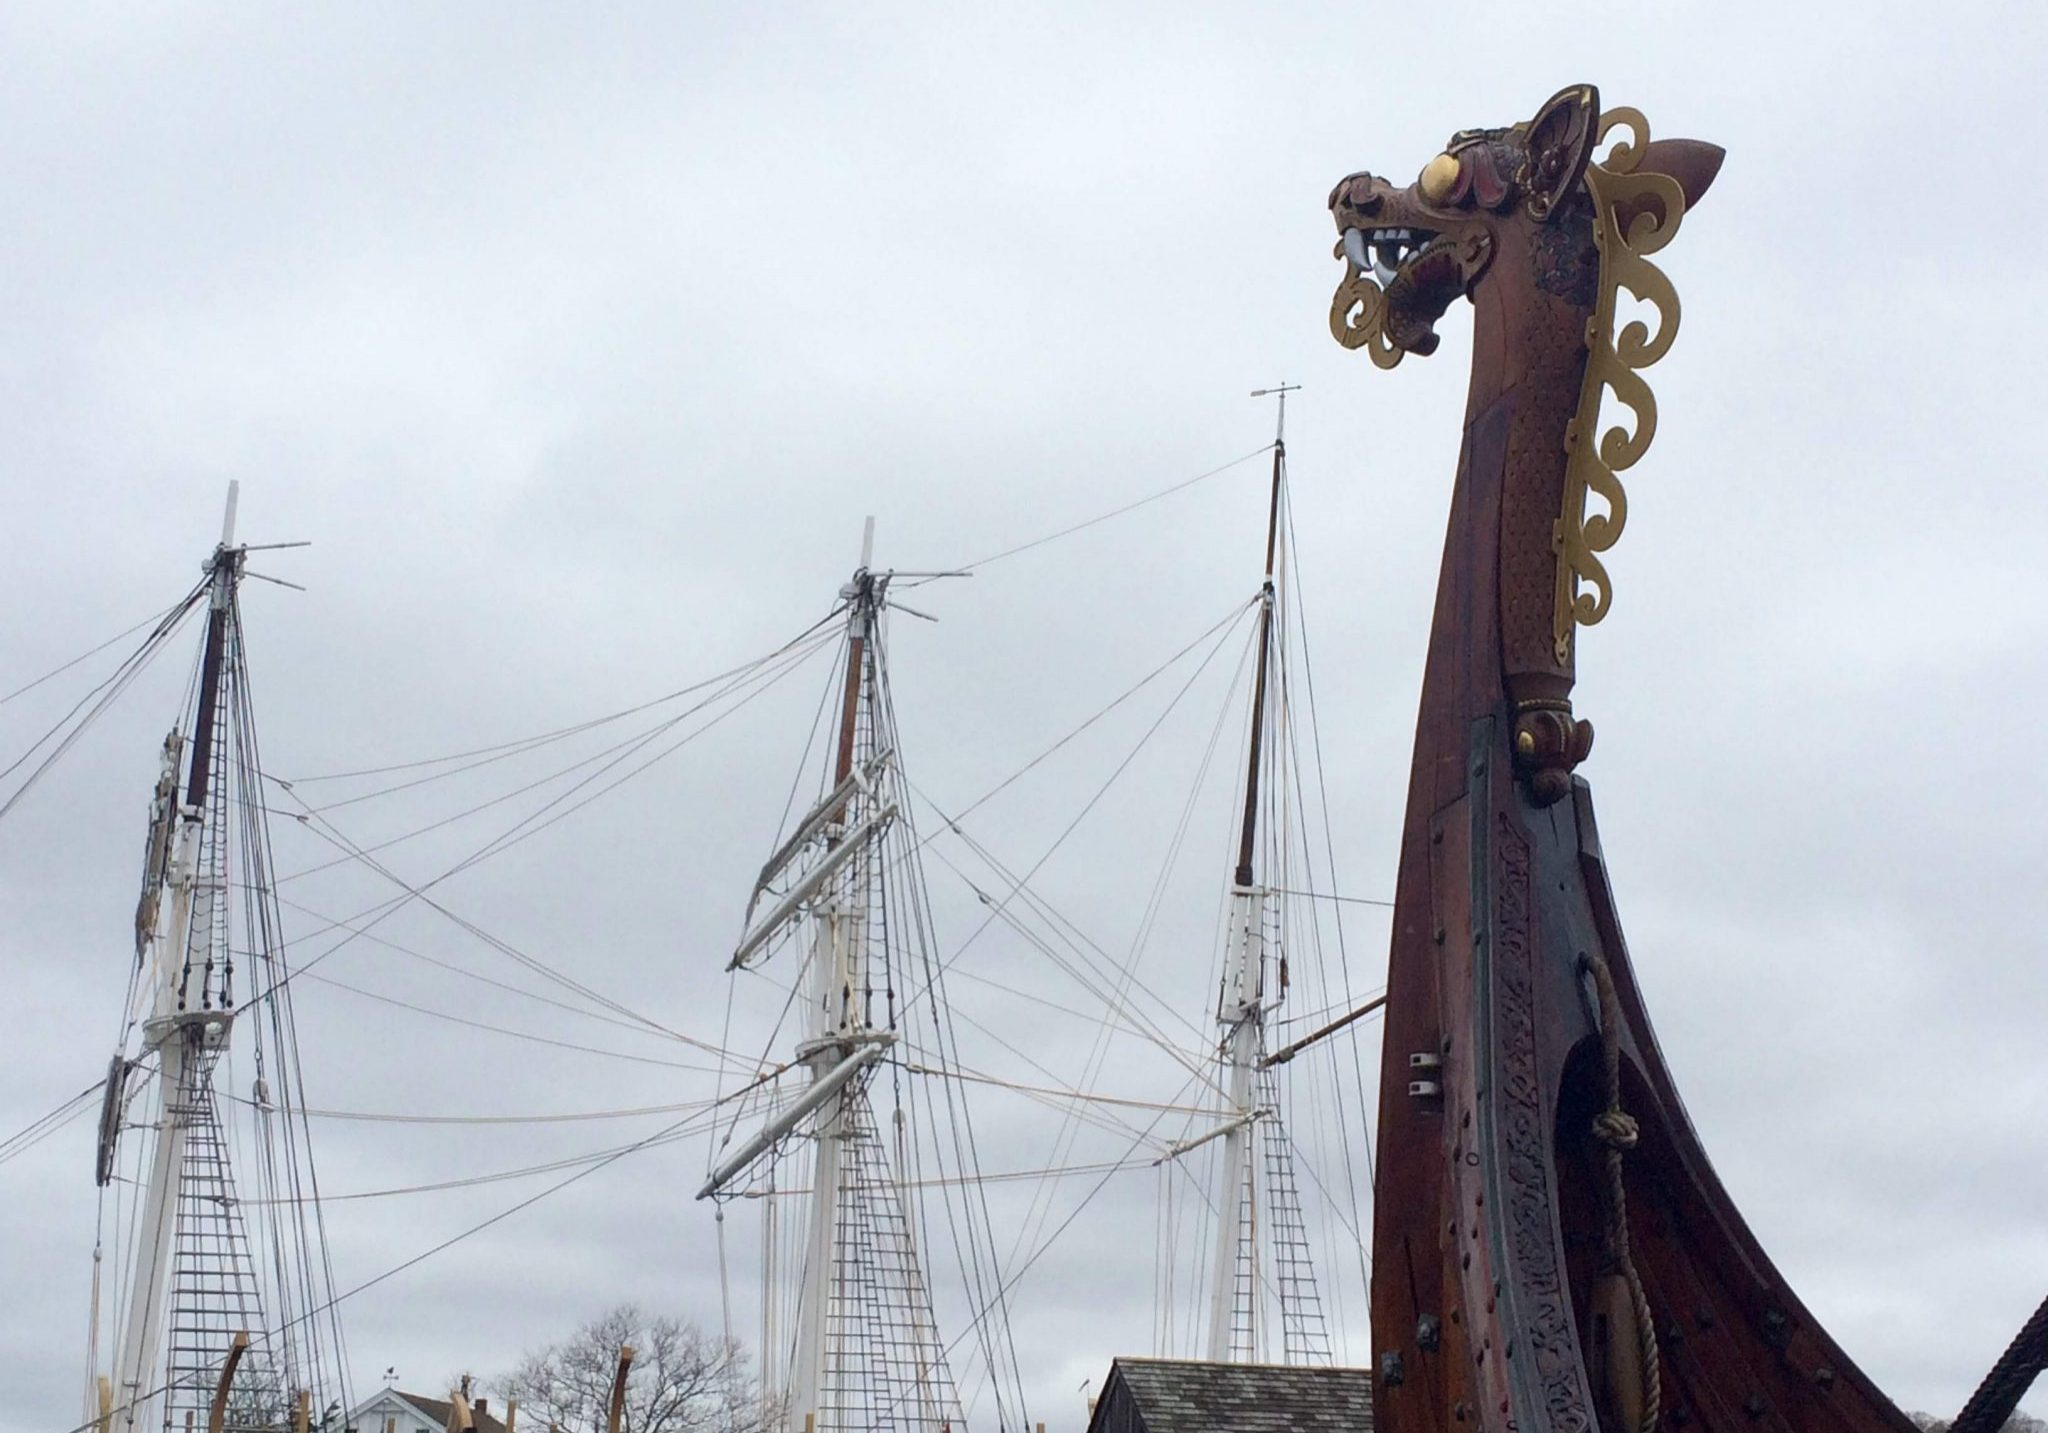 Rigging and detailed carvings from boats at Mystic Seaport